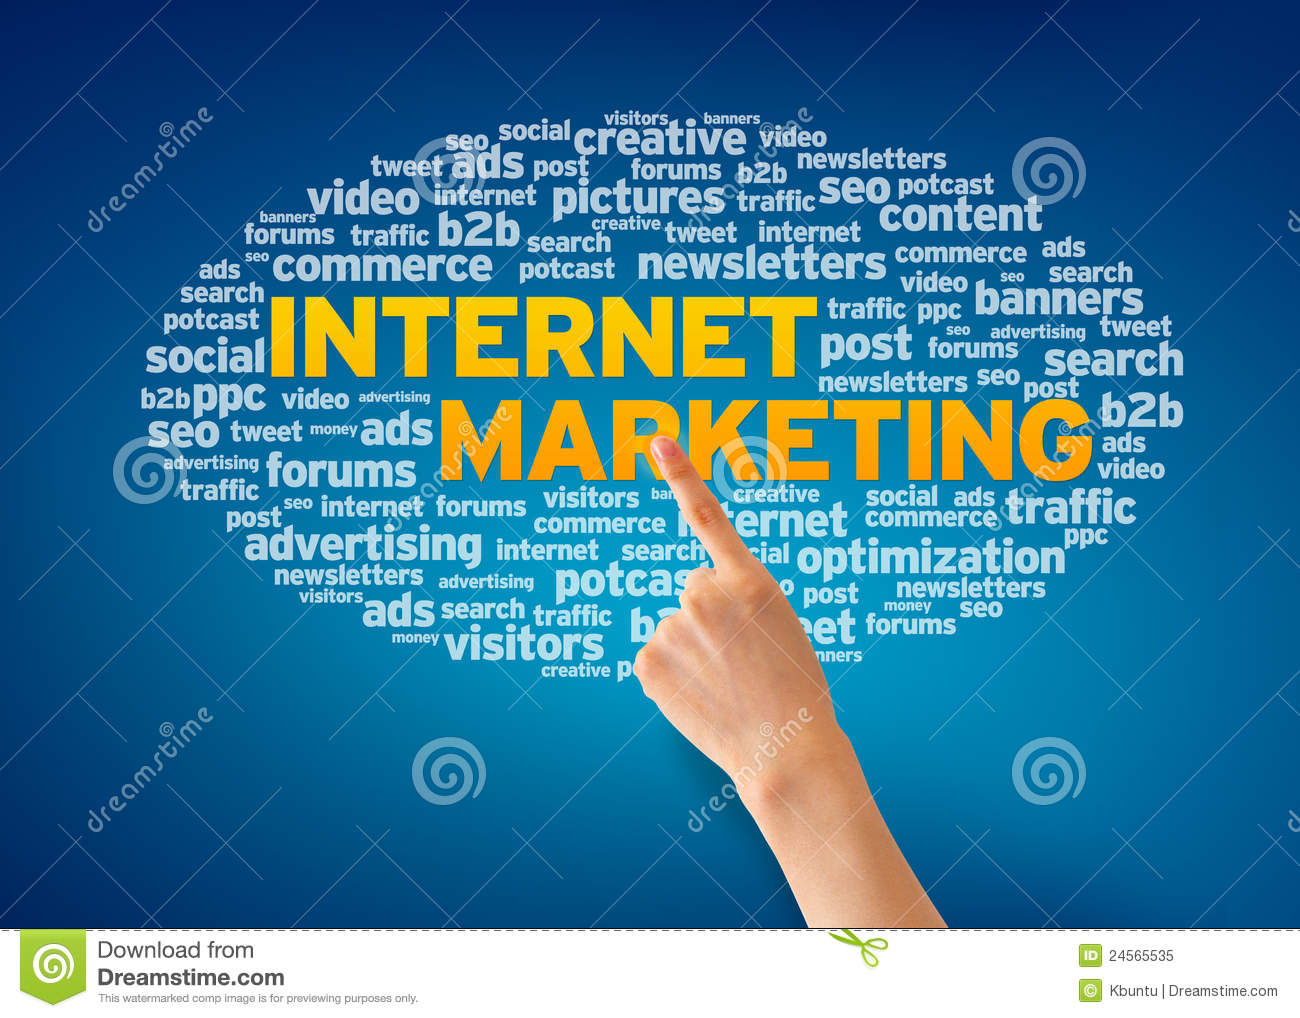 internet-marketing-24565535.jpg